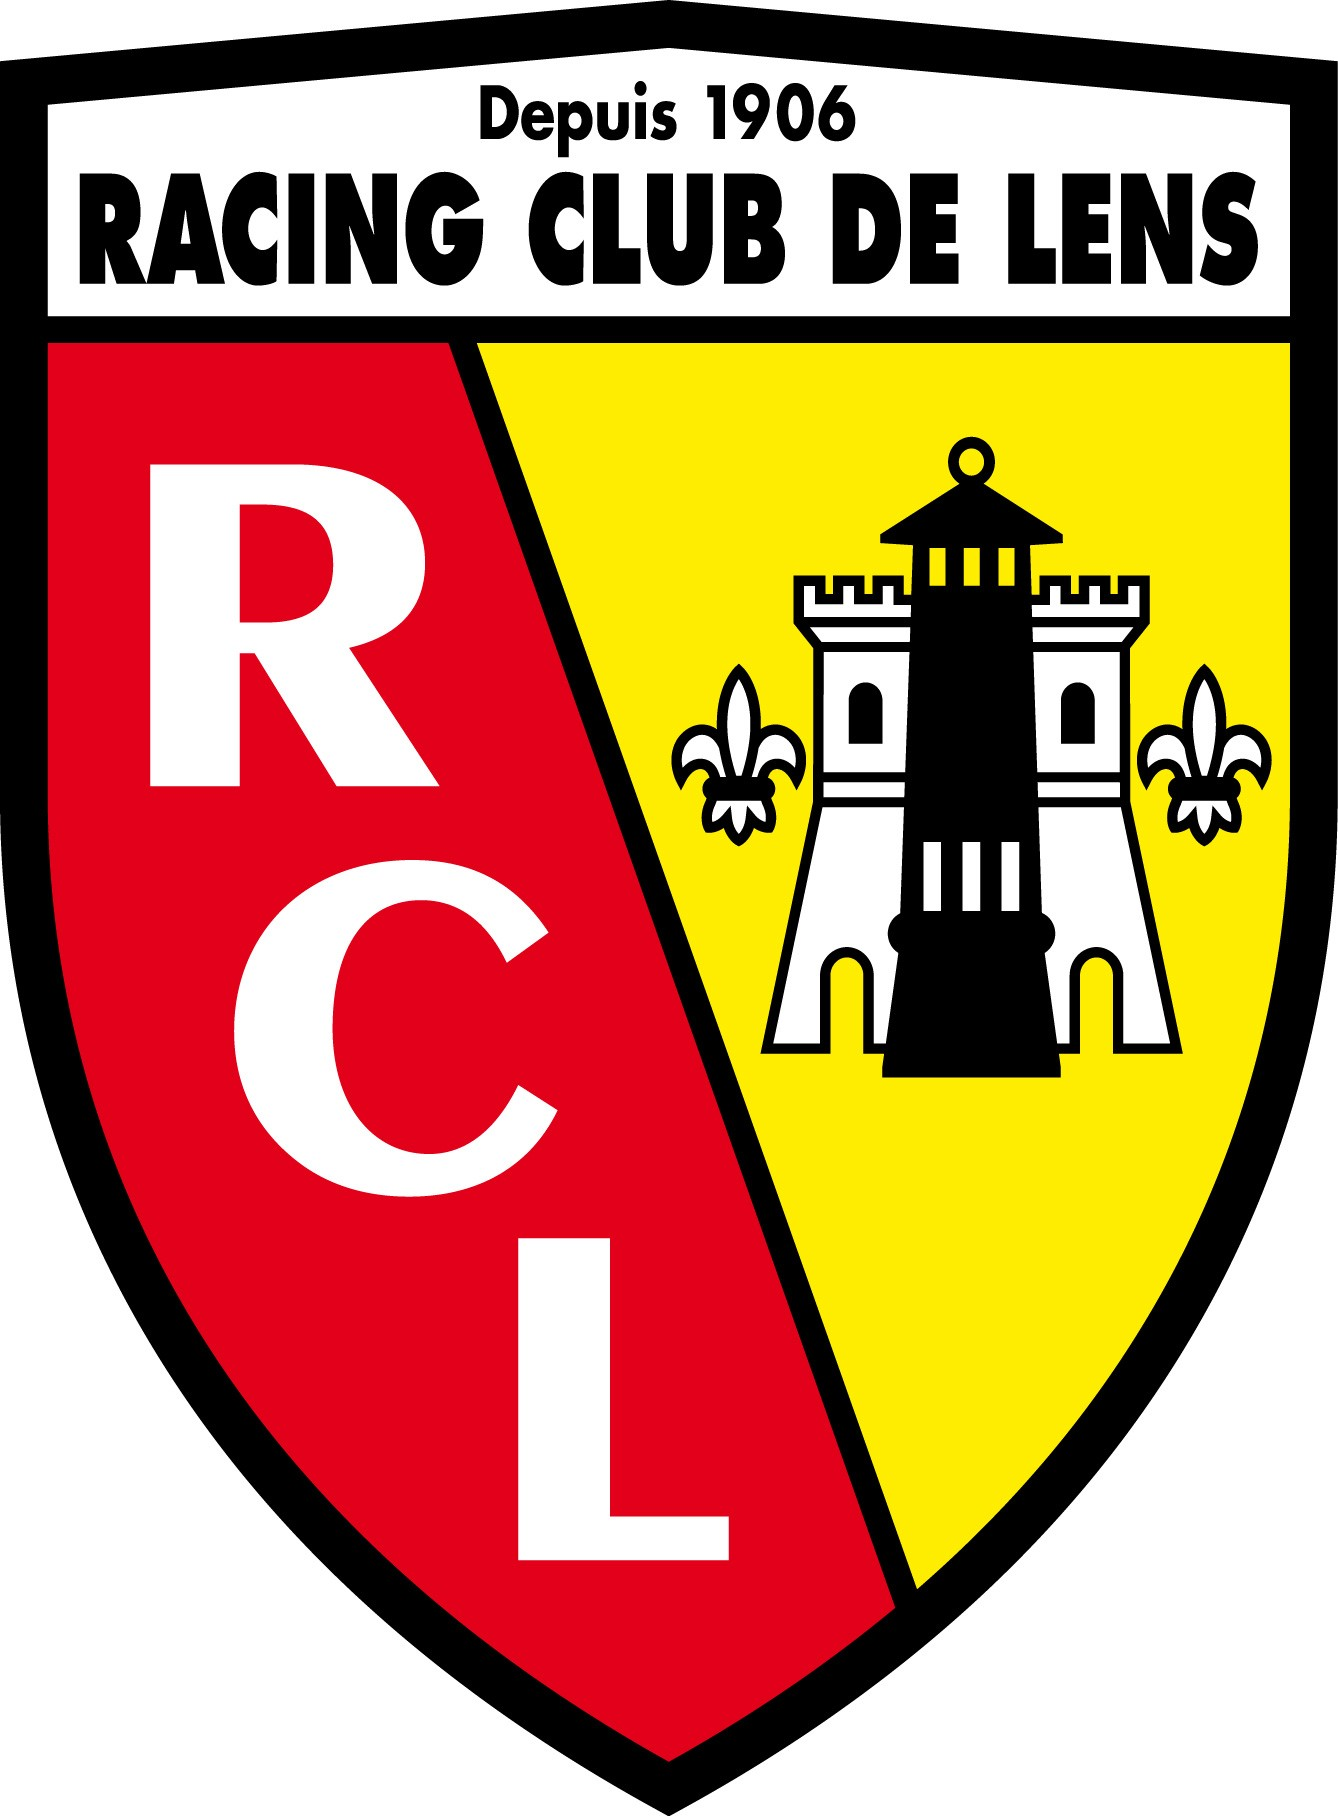 RCL racing club lens transfert demenagement